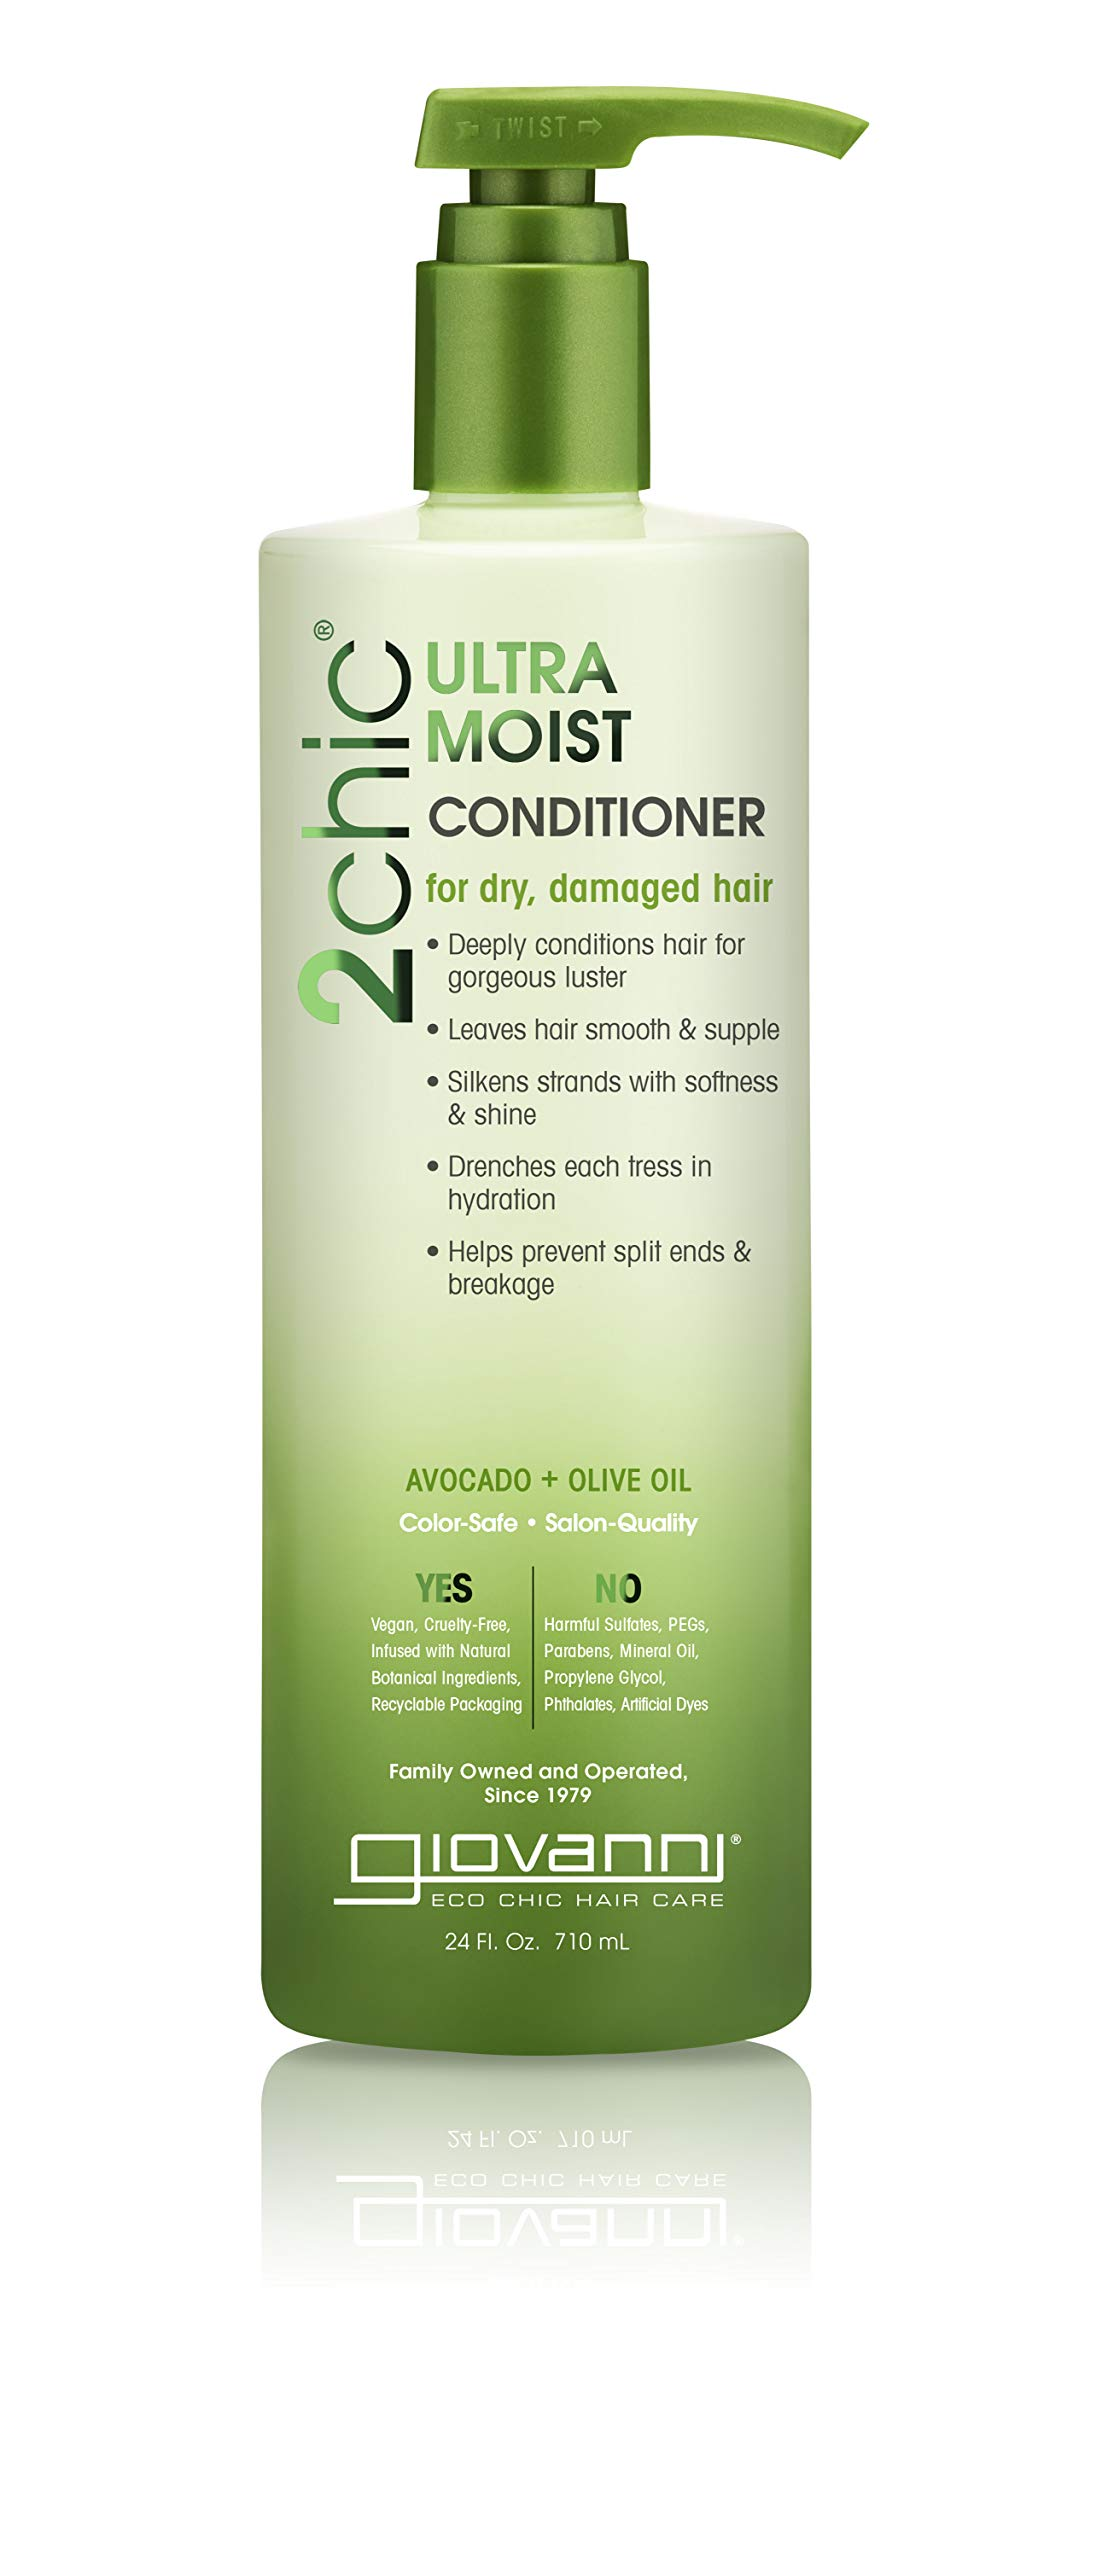 Giovanni Creamy Avocado & Olive Oil Conditioner - 2chic Ultra Moist Hydrating Formula For Shiny, Supple Hair, Sulfate Free, Color Safe, 24 Ounce (Pack of 1)